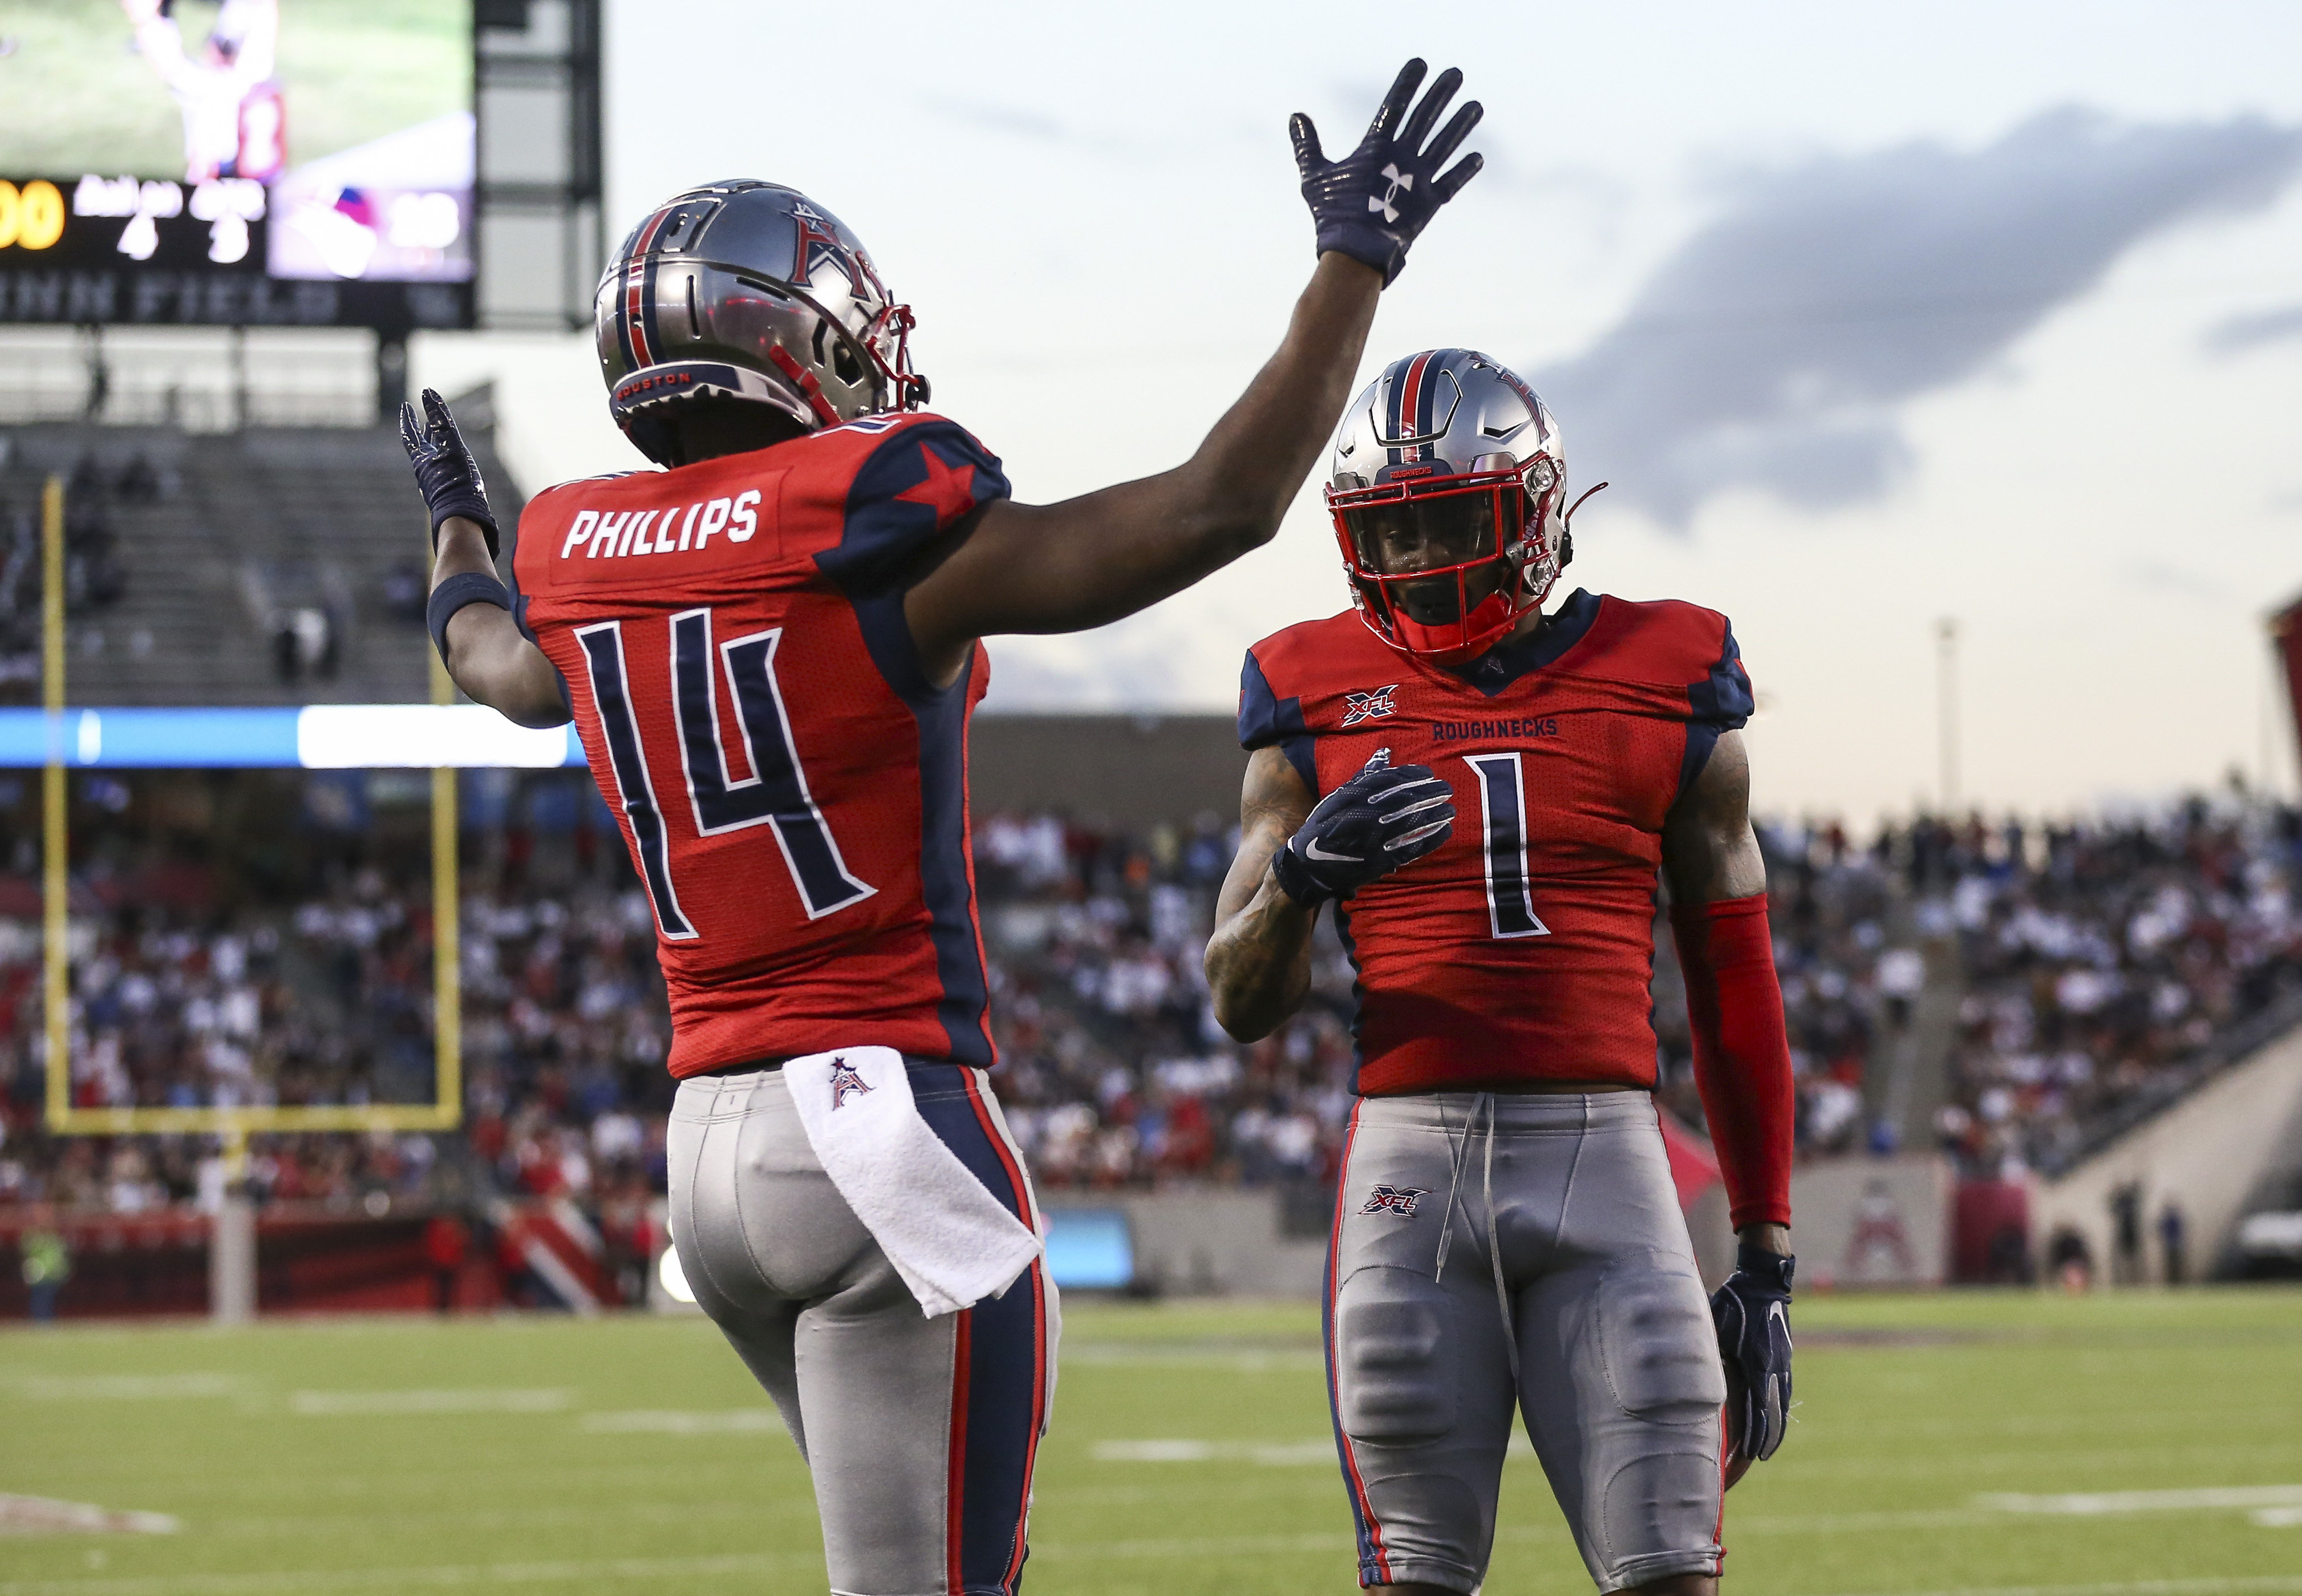 Houston Roughnecks wide receiver Cam Phillips and wide receiver Kahlil Lewis celebrate after scoring a touchdown during the third quarter against the Los Angeles Wildcats in a XFL football game at TDECU Stadium.